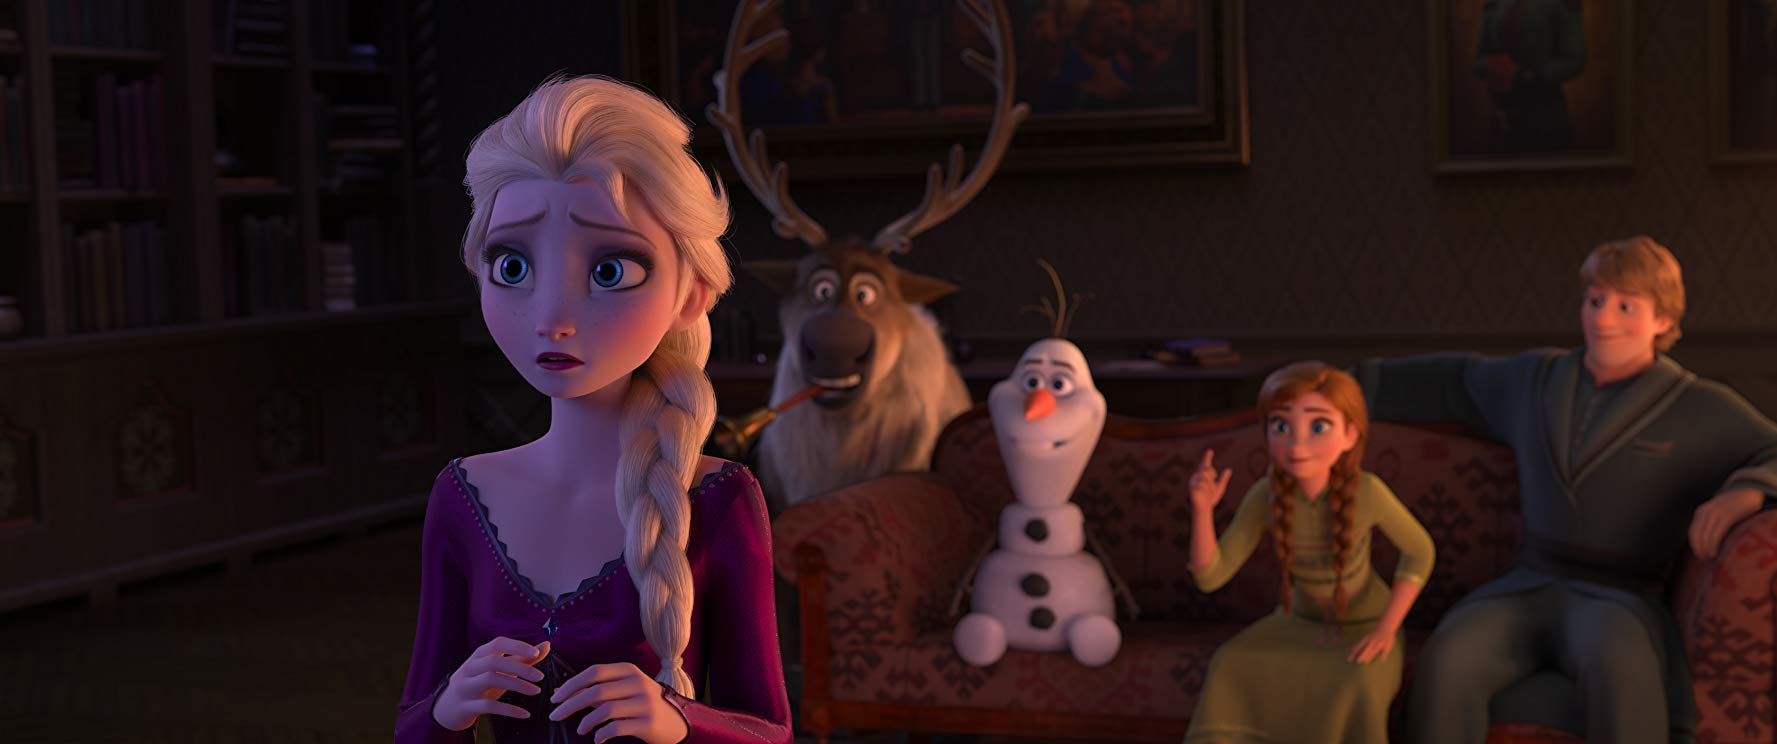 Frozen 2 supervising animator Justin Sklar on the film's craziest scene